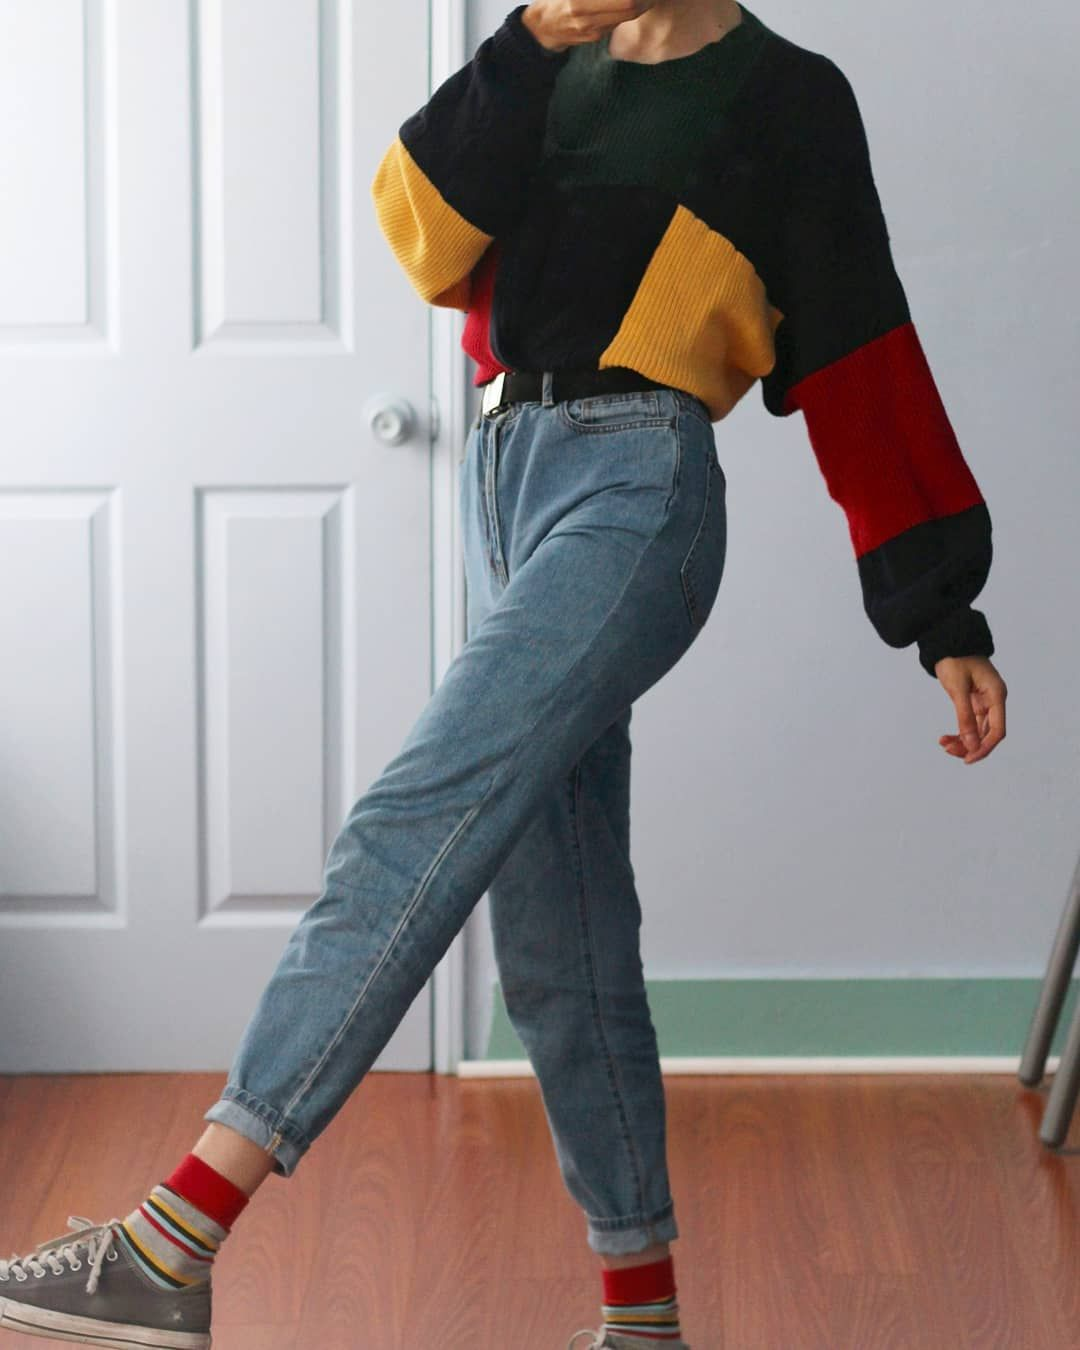 c6fafaf2 (my photos) comment an unpopular opinion the sweater is from depop and jeans  are from forever21 :)